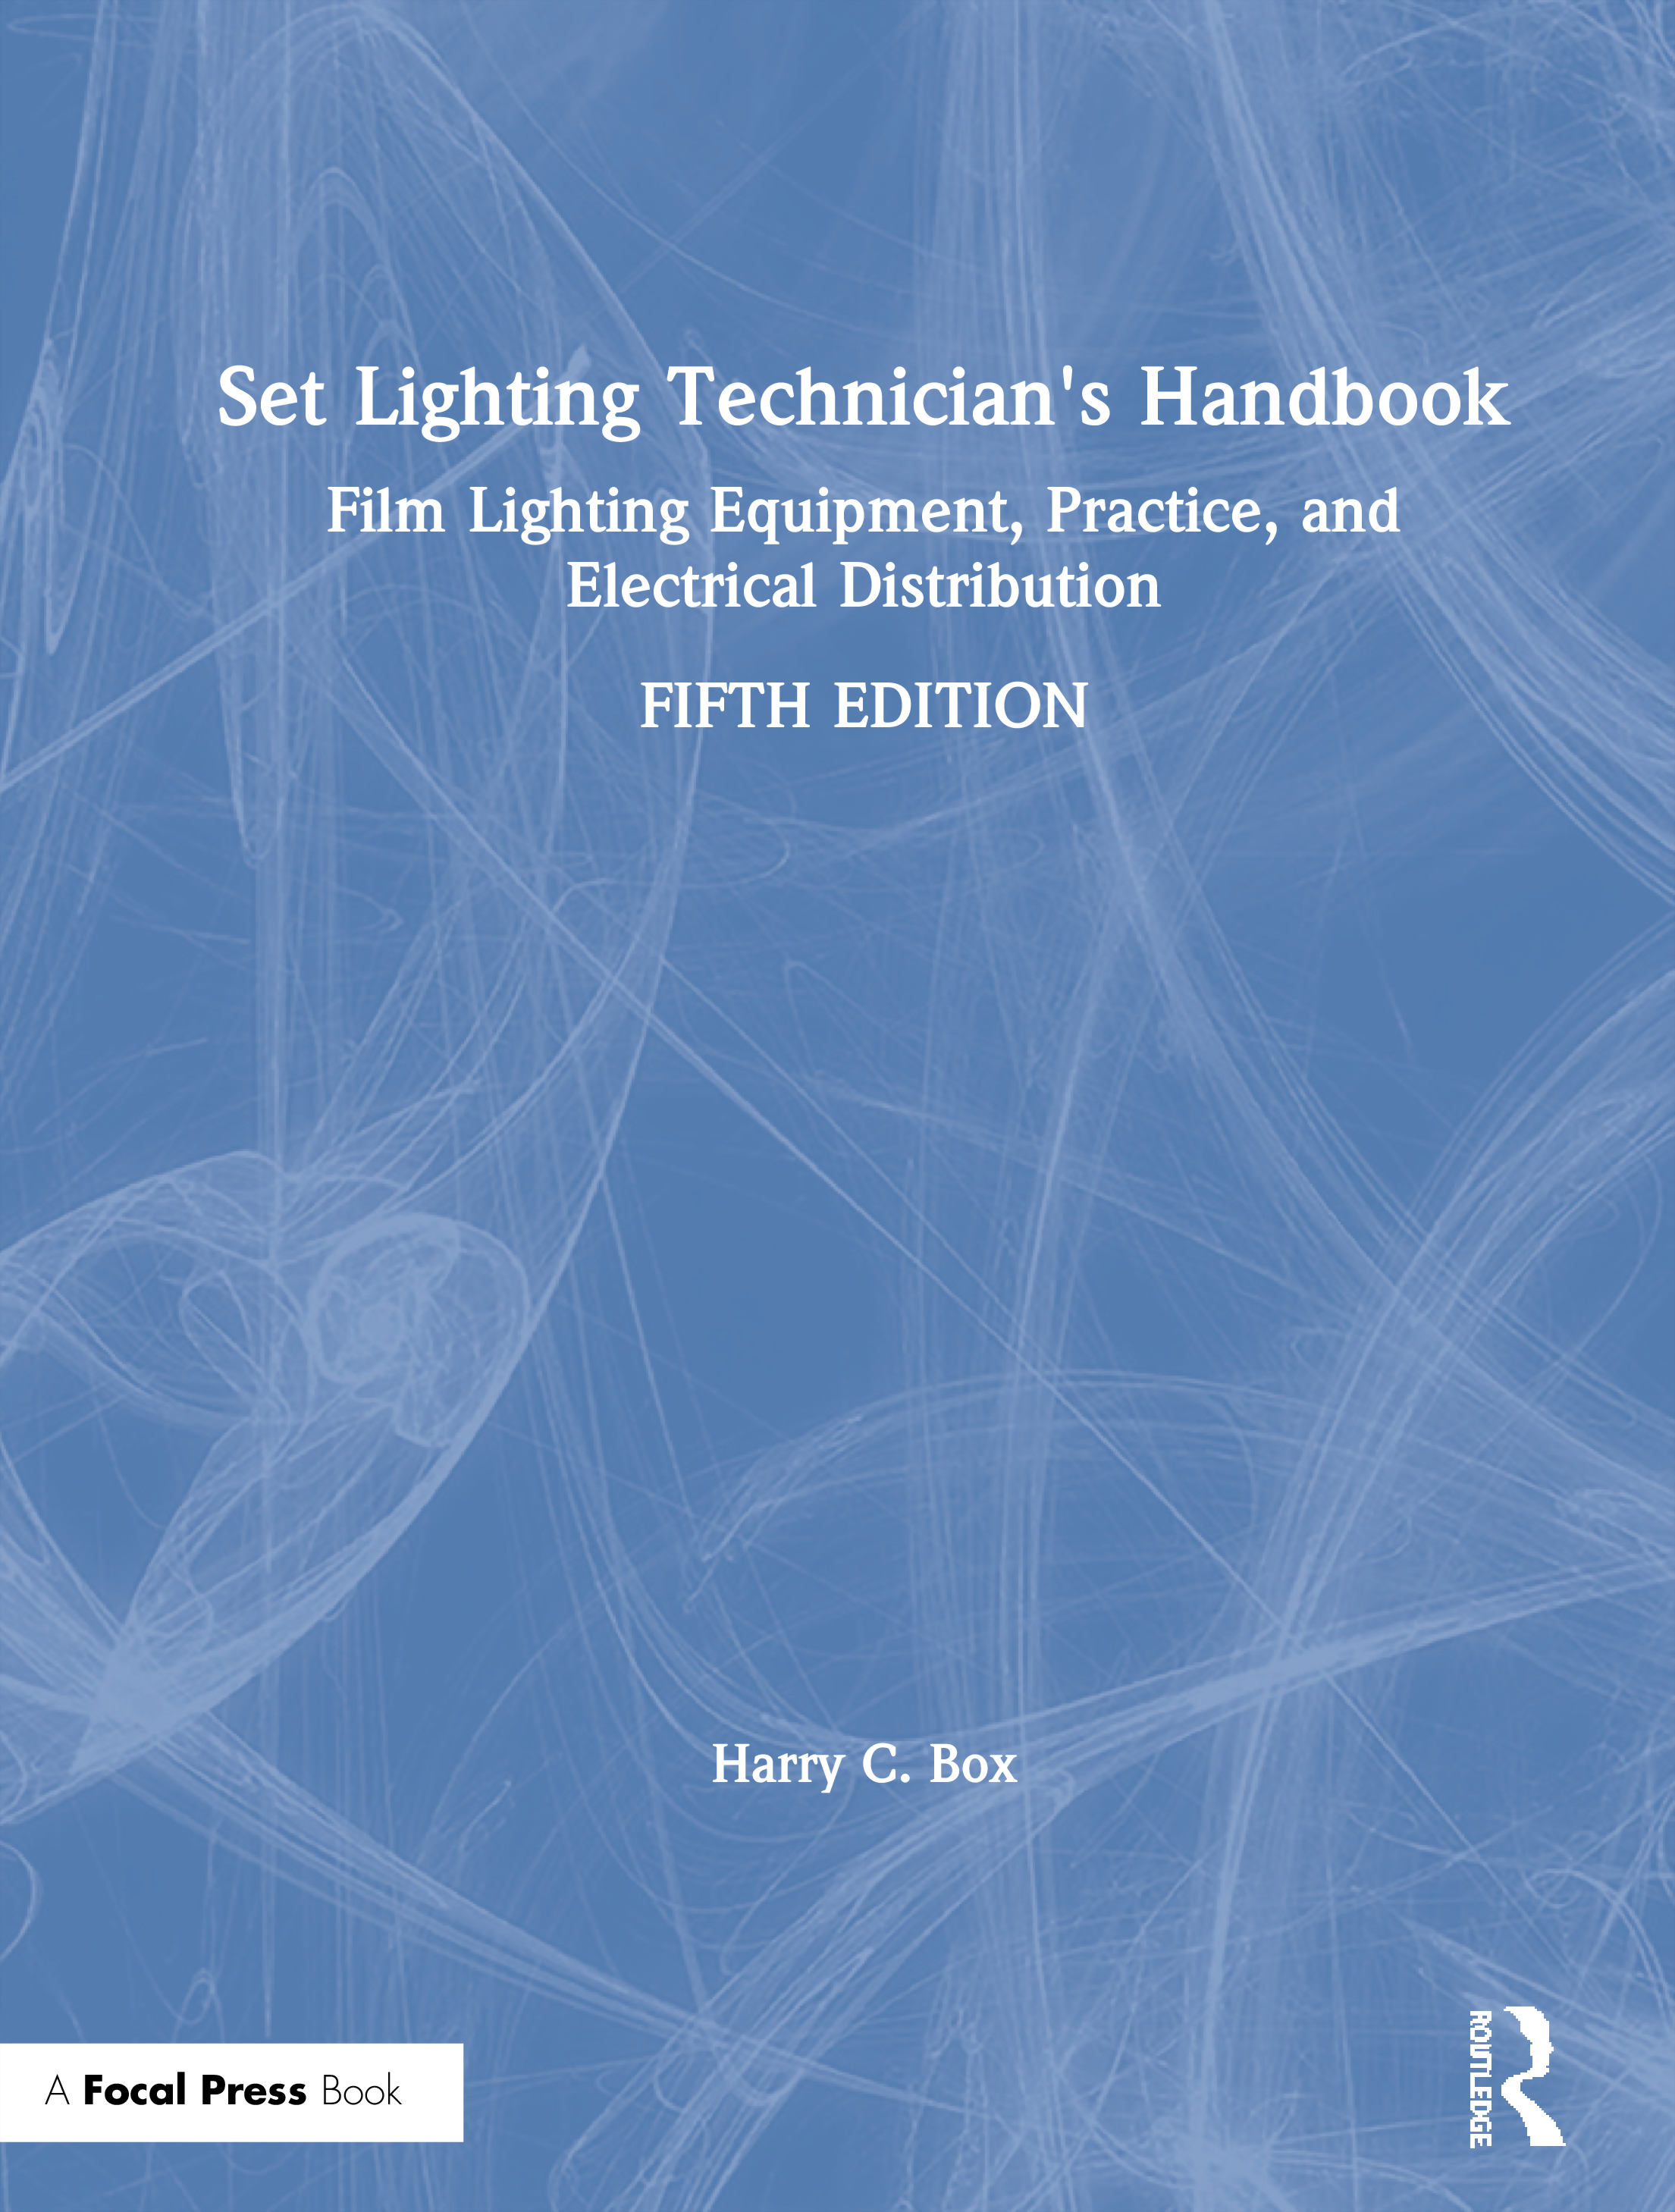 Set Lighting Technician's Handbook: Film Lighting Equipment, Practice, and Electrical Distribution book cover